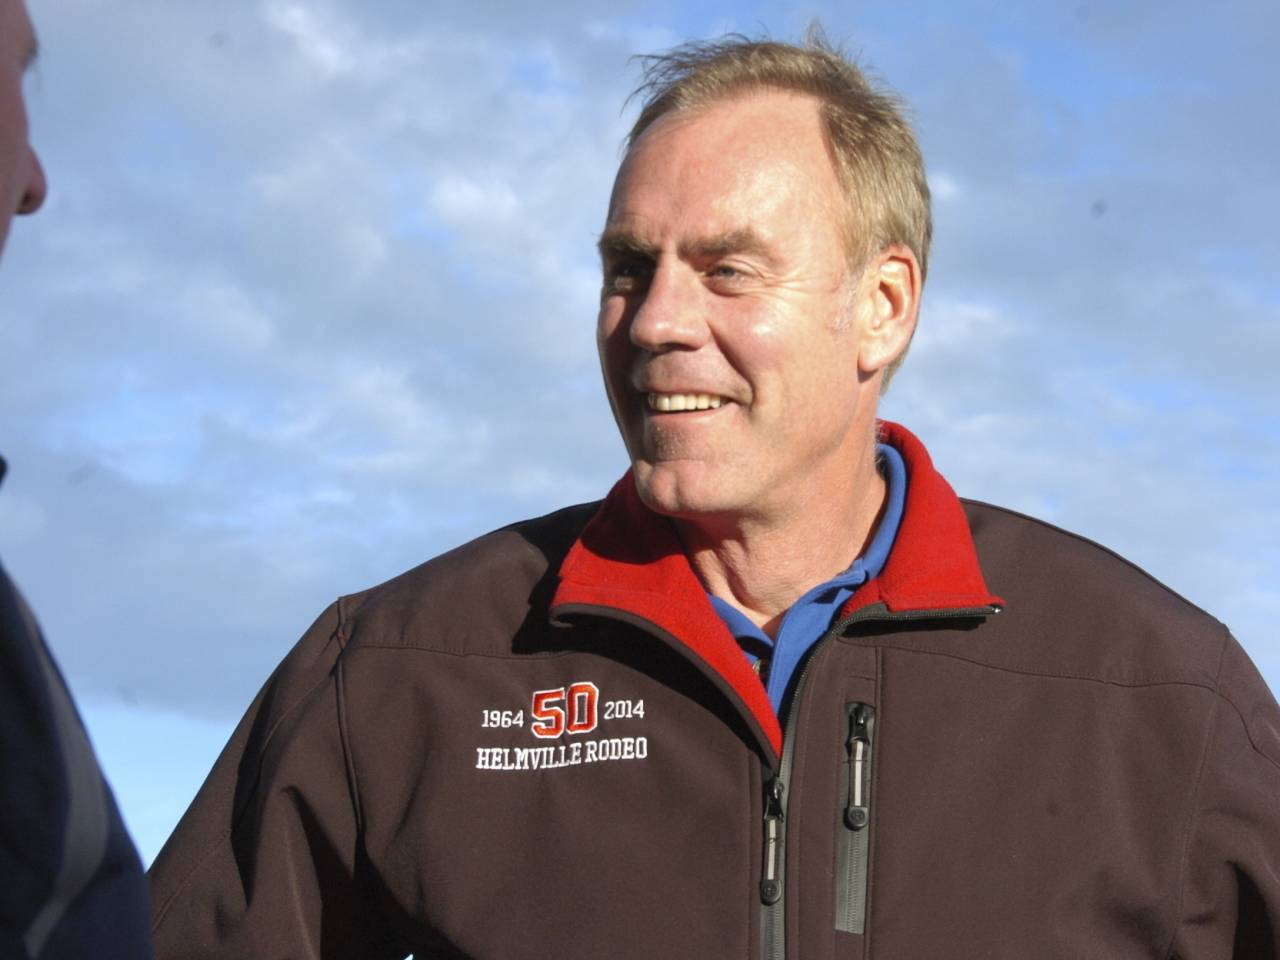 Ryan Zinke Donald Trump S Choice For Secretary Of The Interior Allegedly Committed Travel